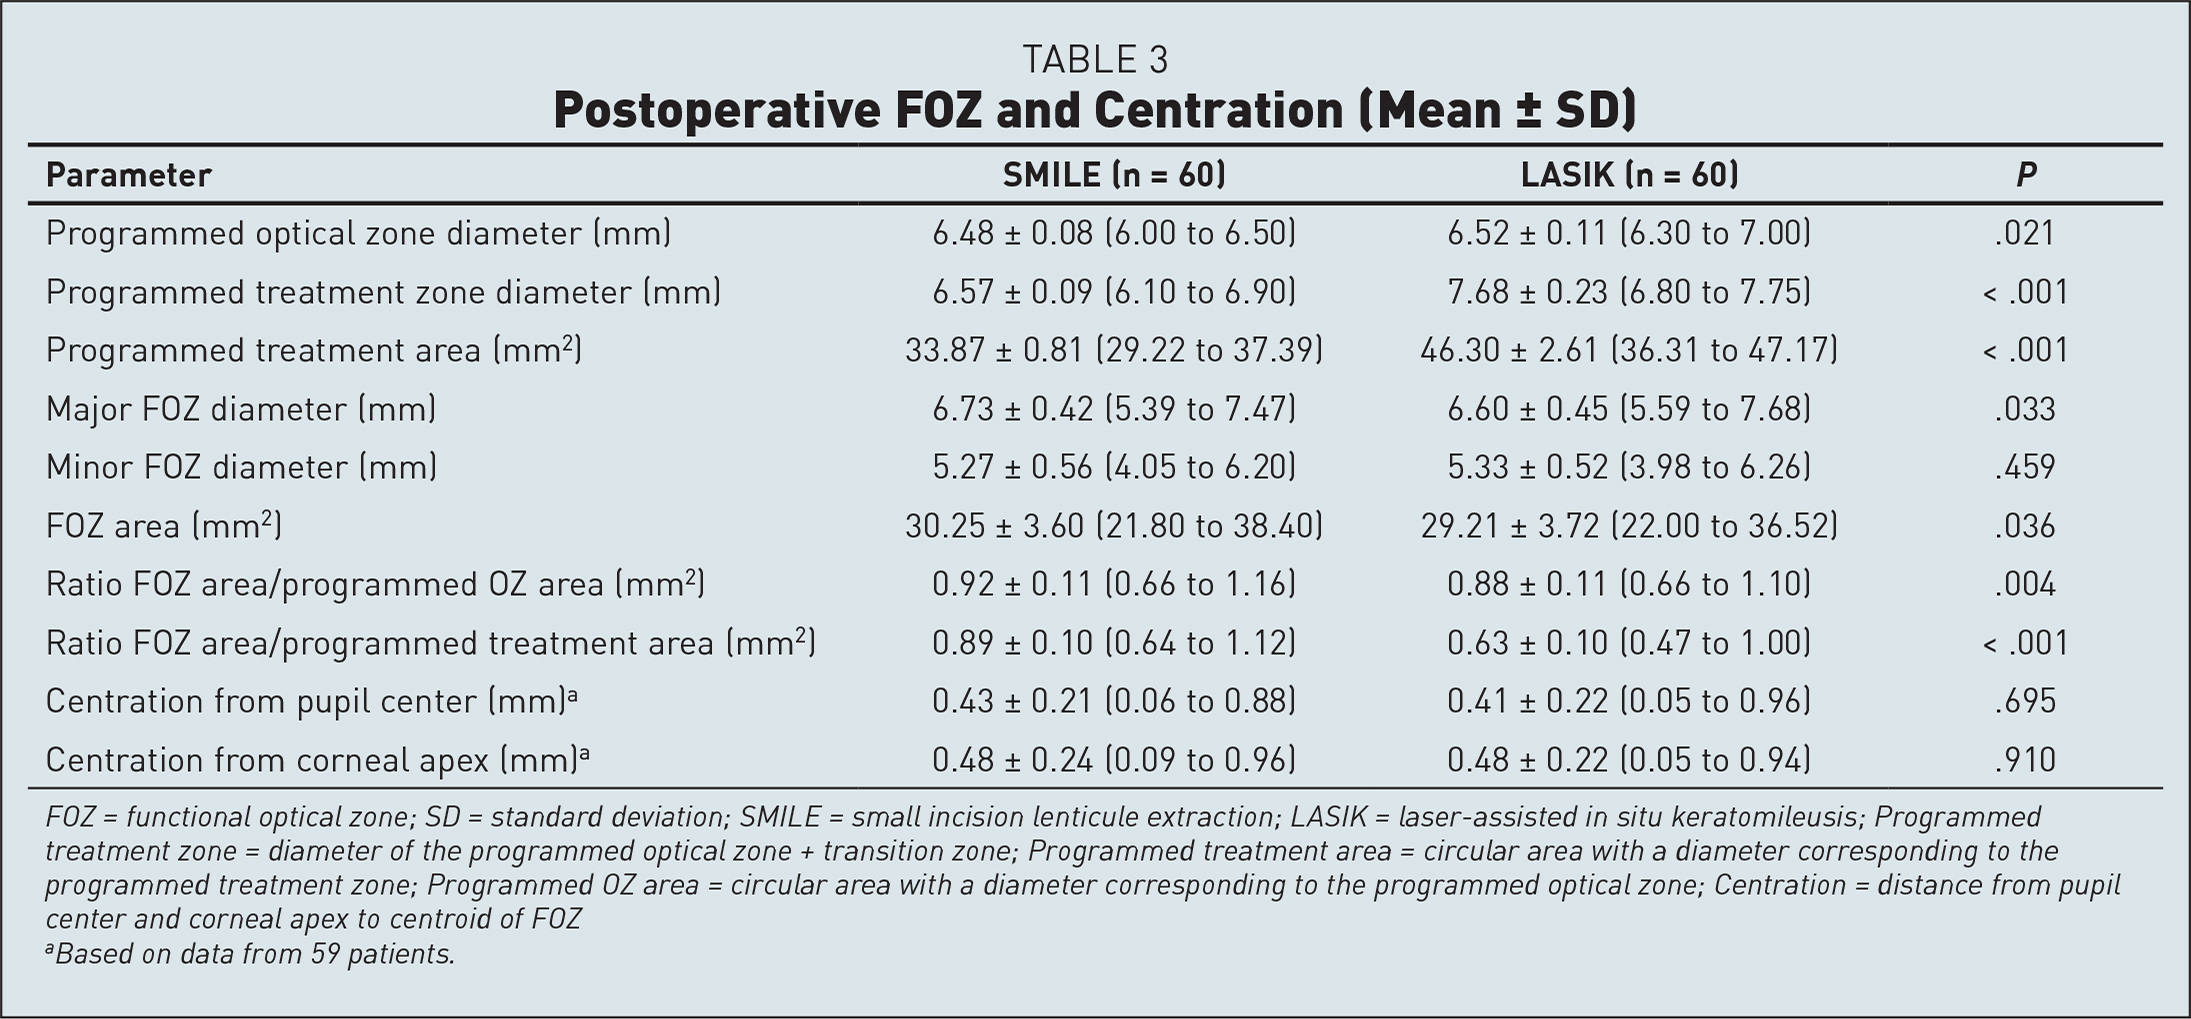 Postoperative FOZ and Centration (Mean ± SD)